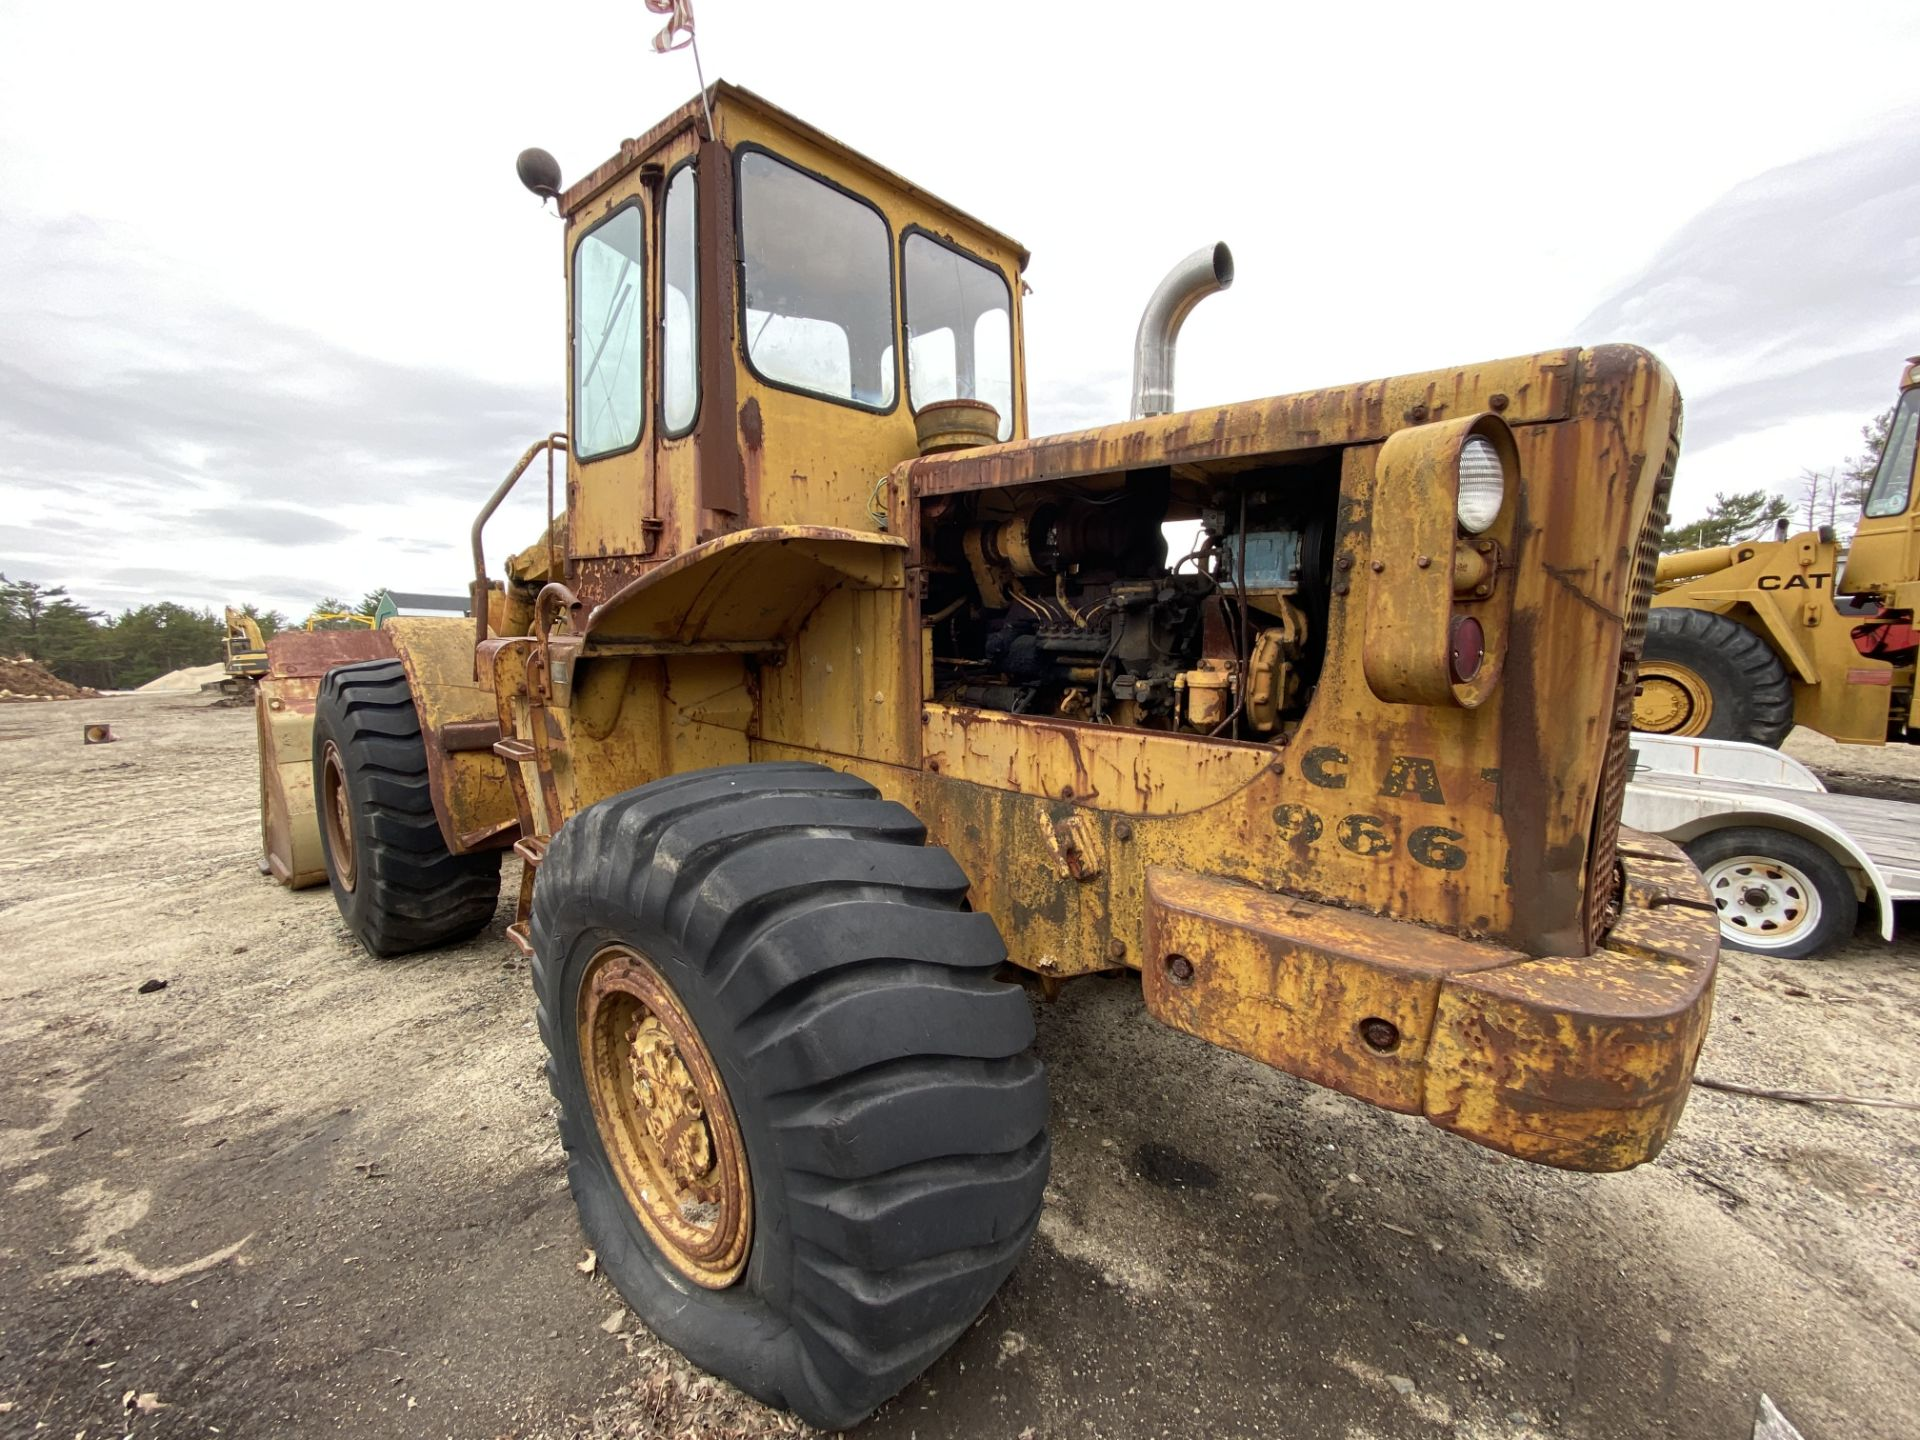 Caterpillar 966B Wheel Loader s/n 75A4794, No Title - Image 10 of 16